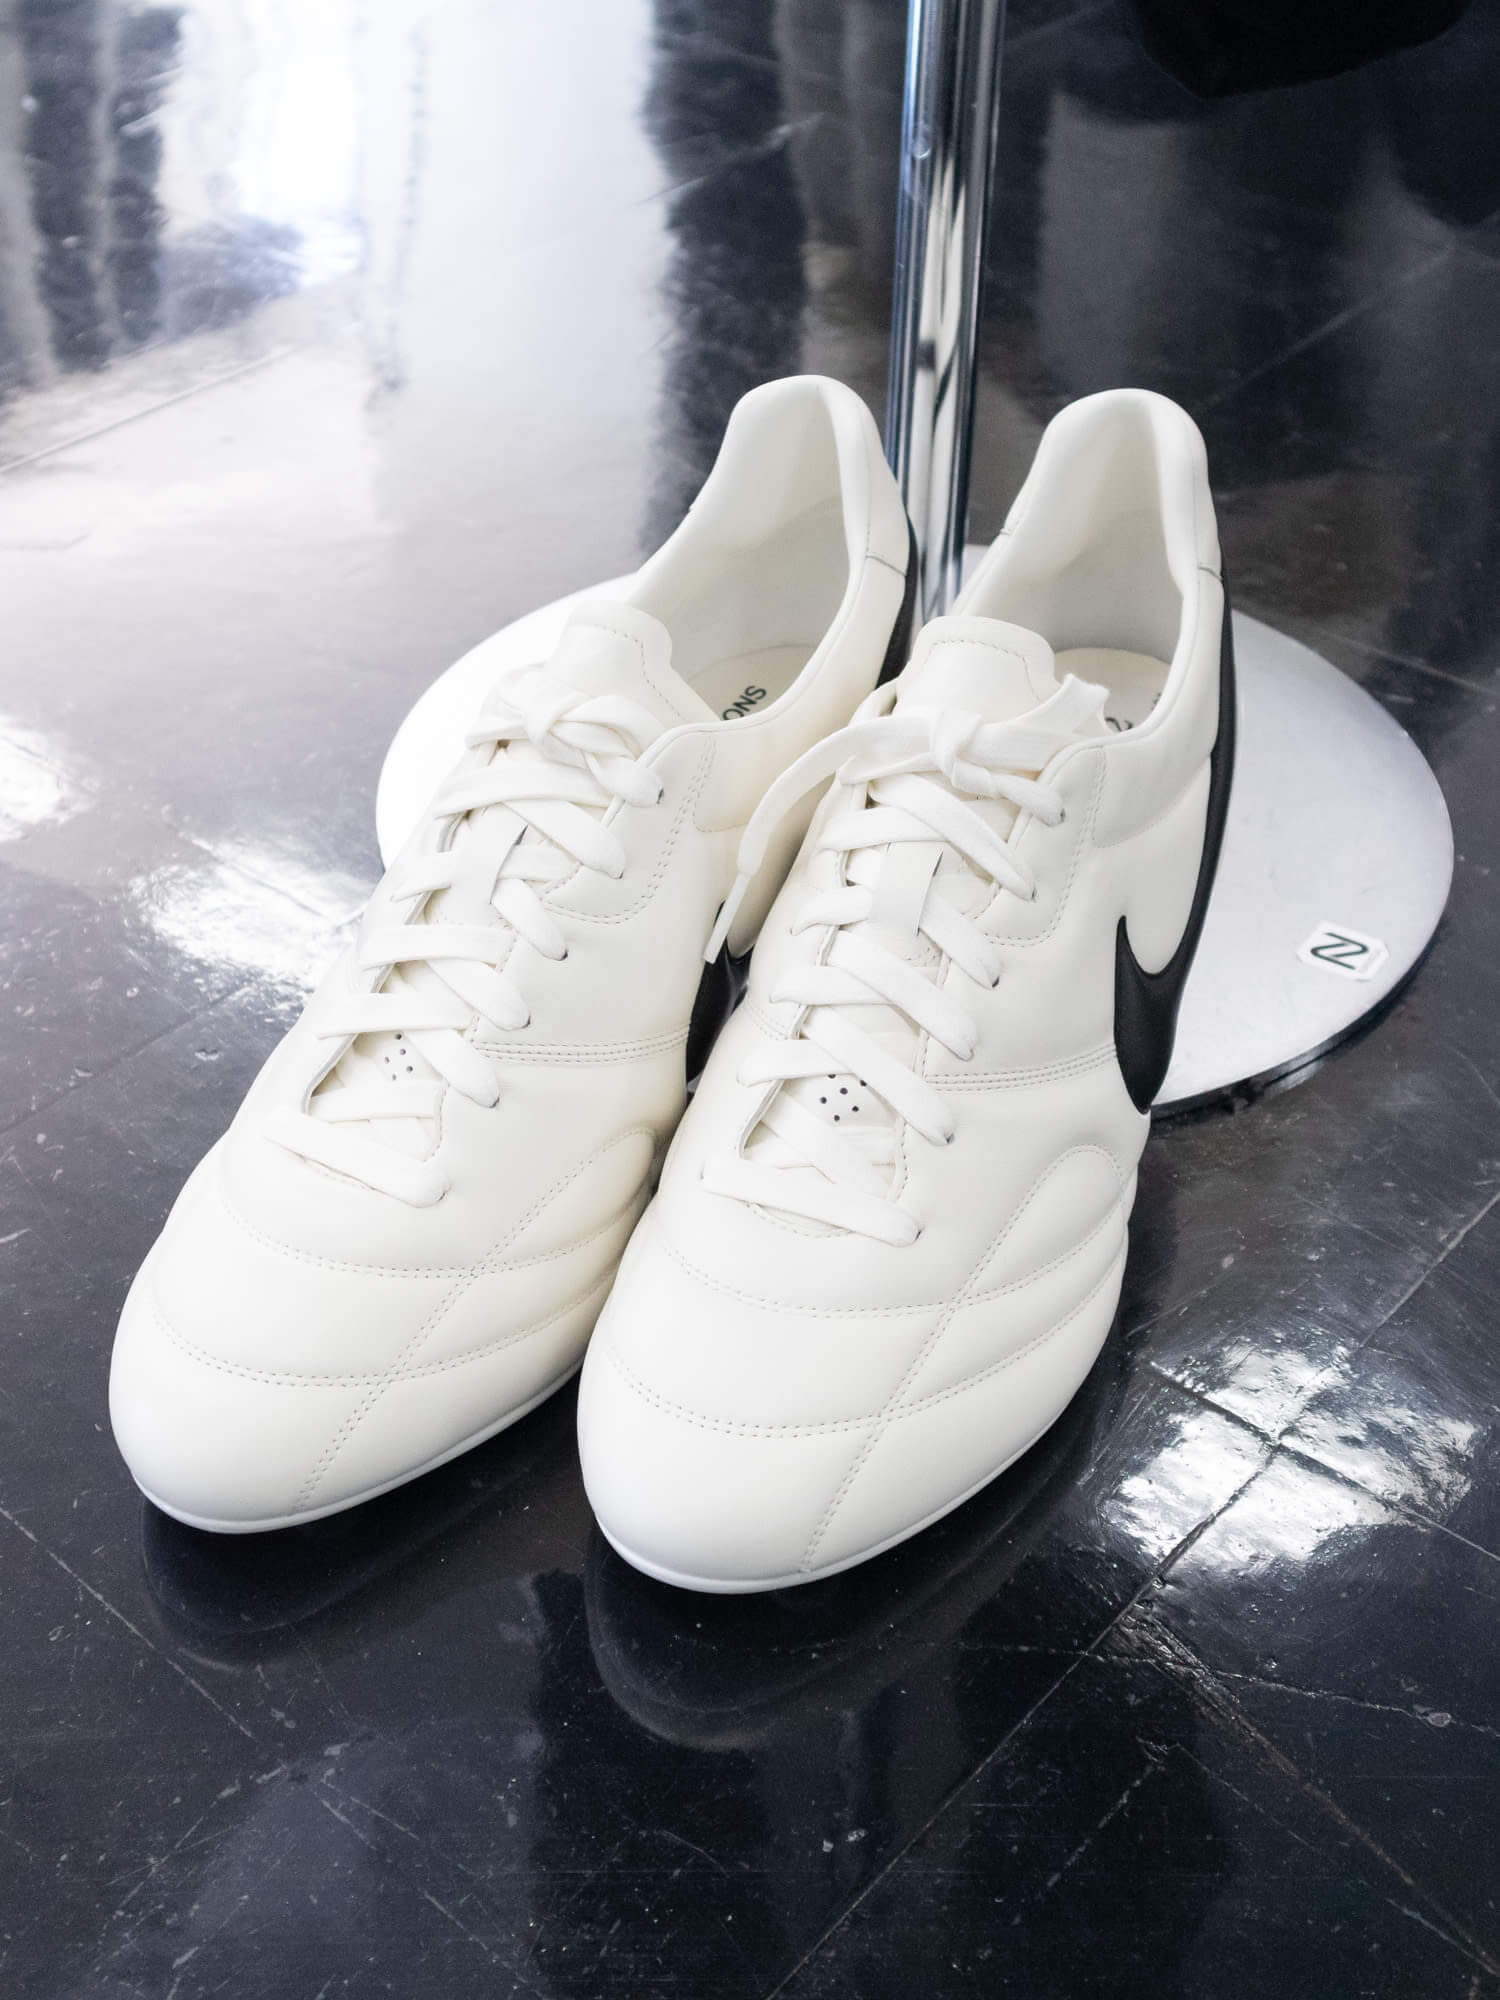 COMME DES GARÇONS × NIKE WMNS SPIKE 2COLORS コム デ ギャルソン × ナイキ ウィメンズ スパイク 全2色 detail white